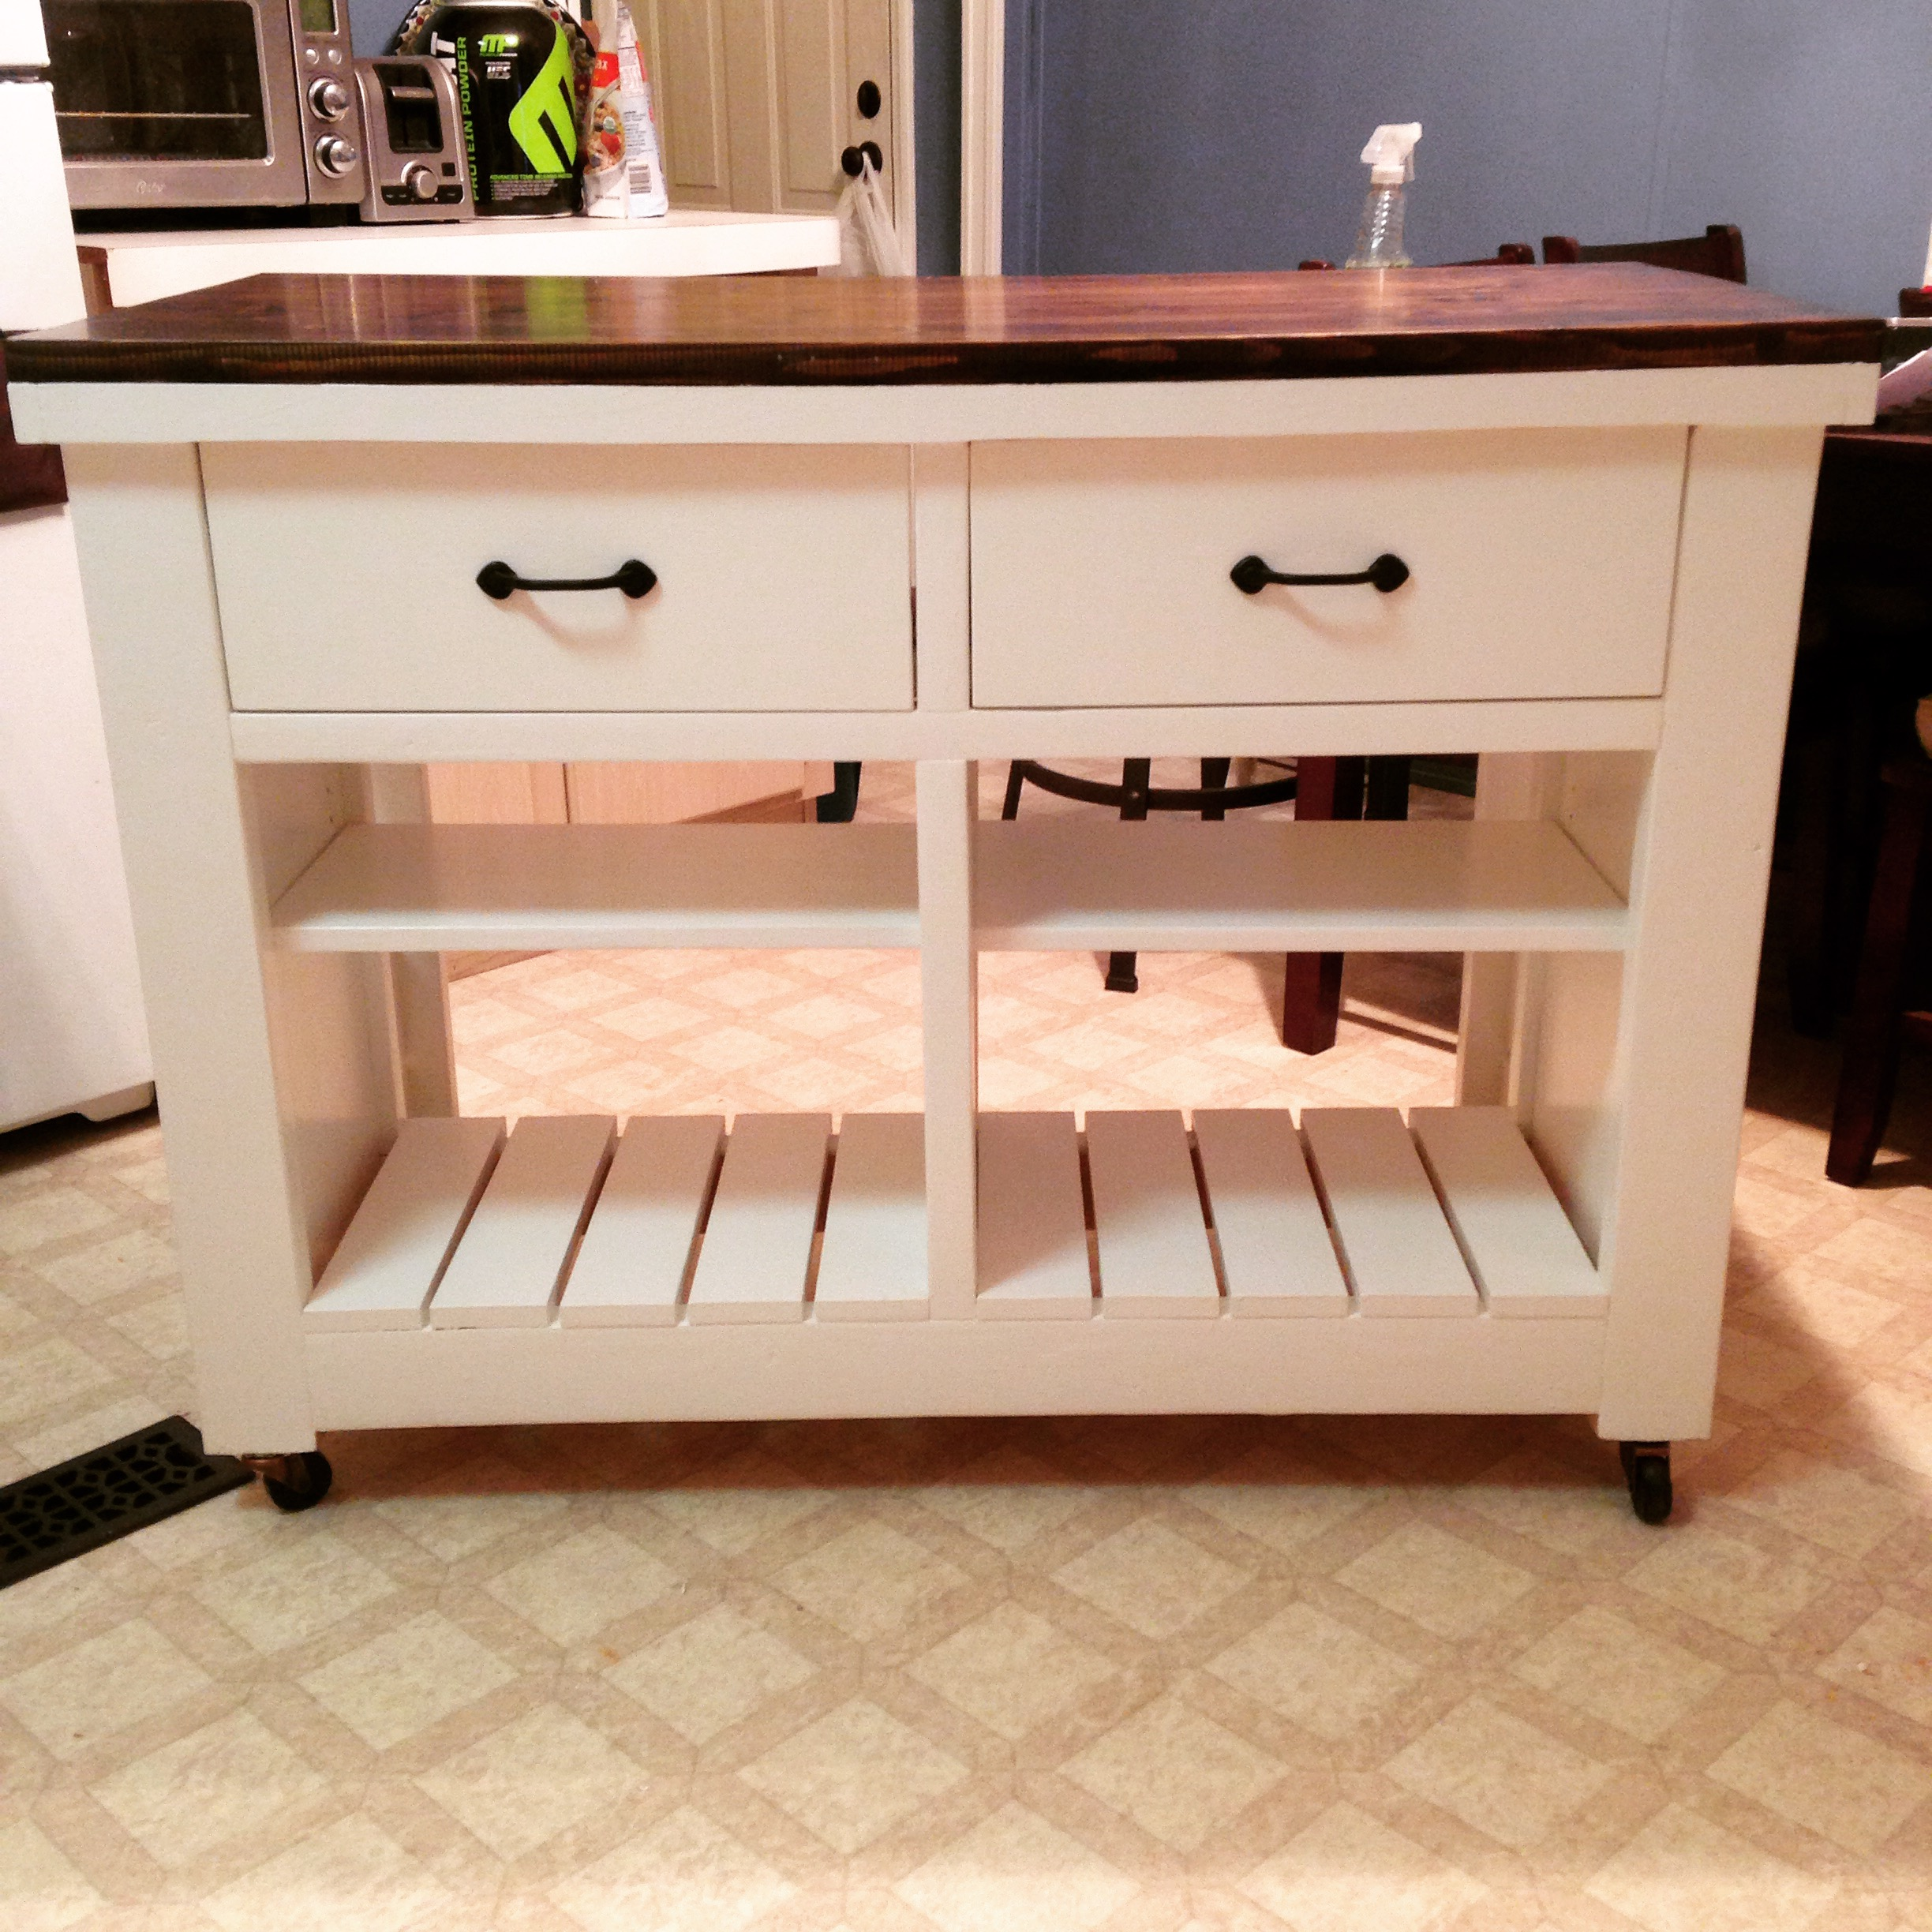 Rustic Kitchen Island DIY - DIY Projects